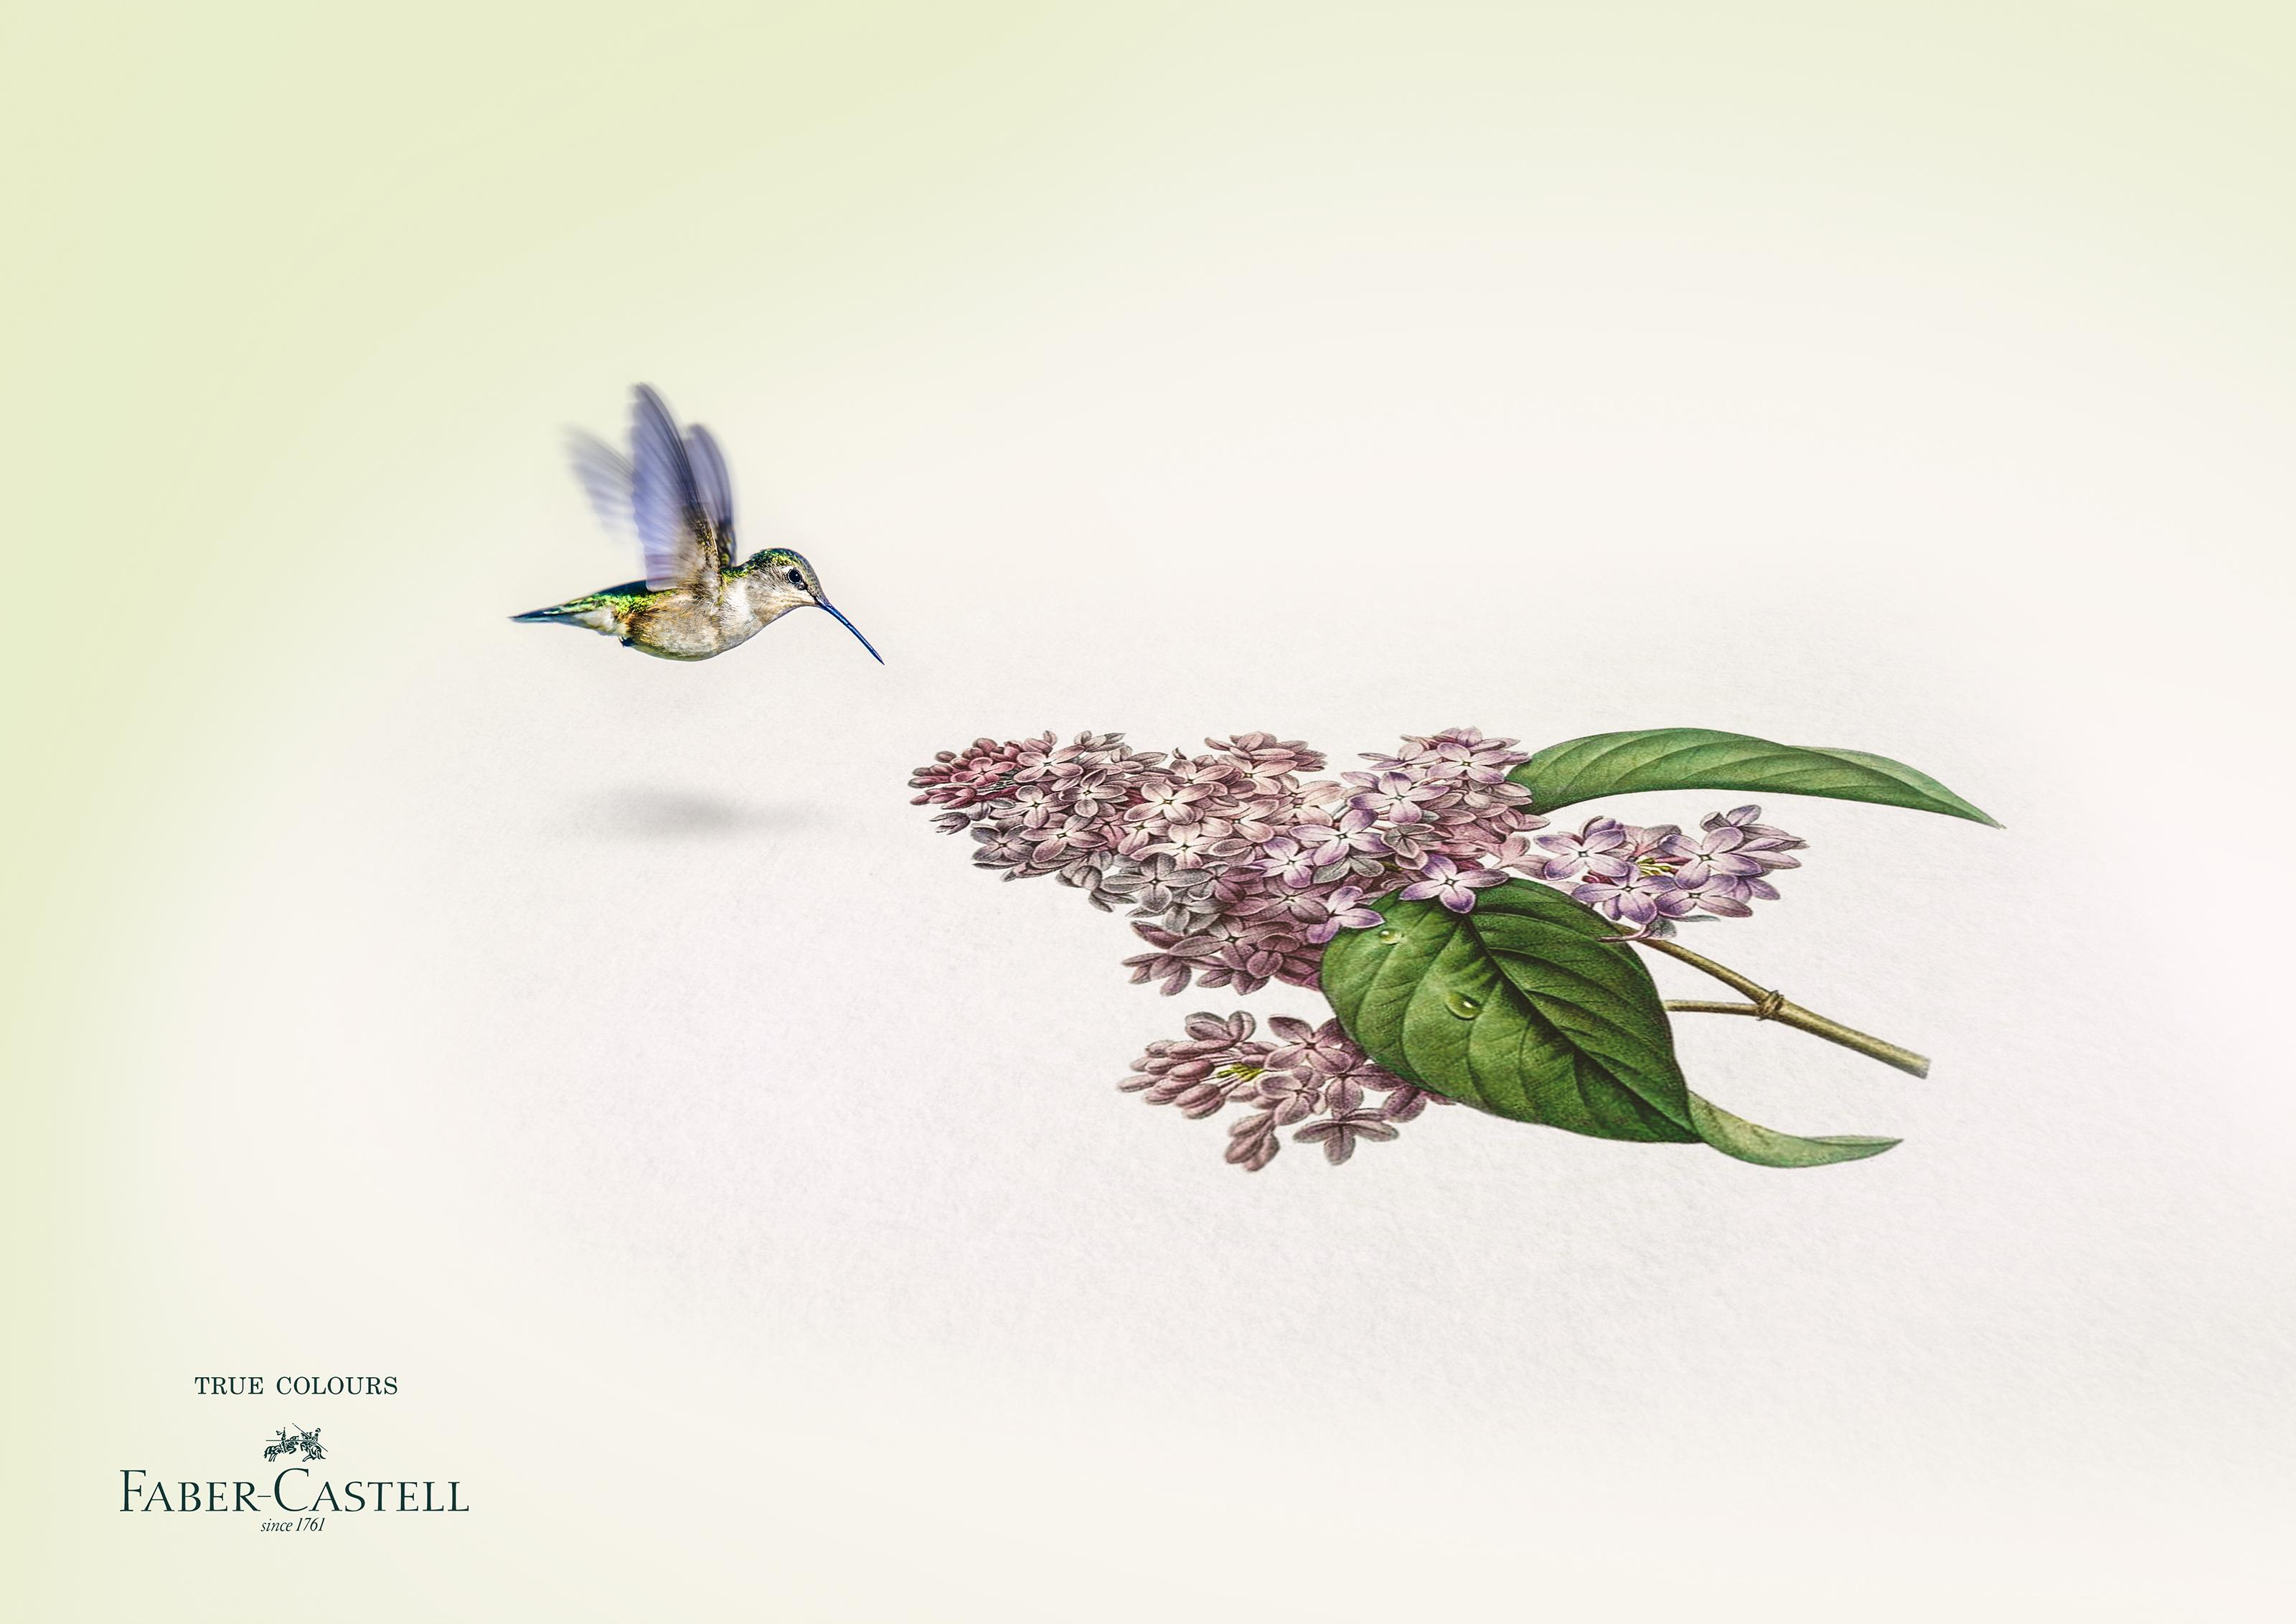 Faber-Castell Print Ad - True Colors - Pollinator